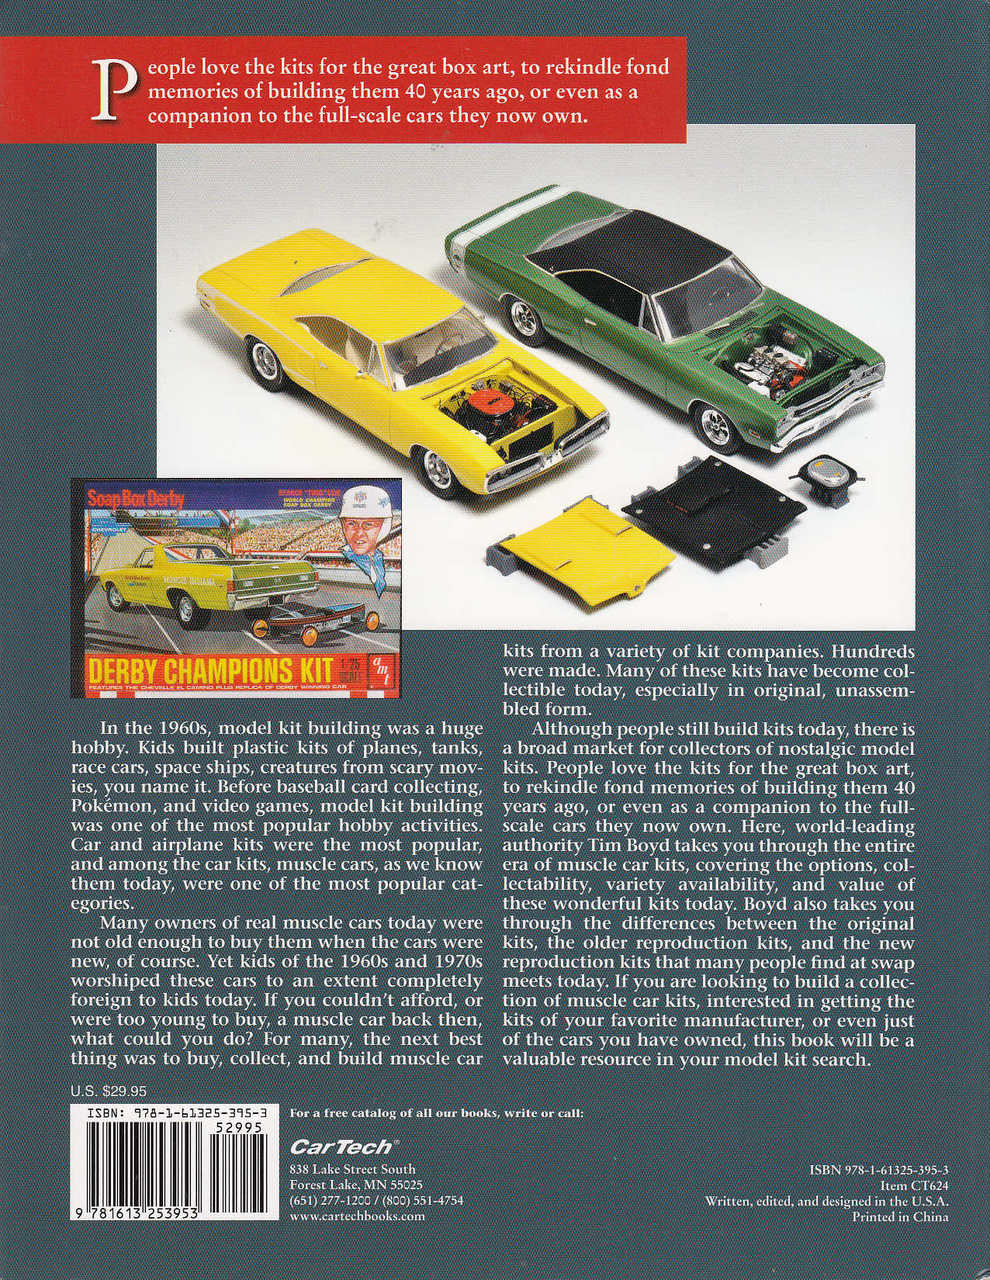 Collecting Muscle Car Model Kits Tim Boyd